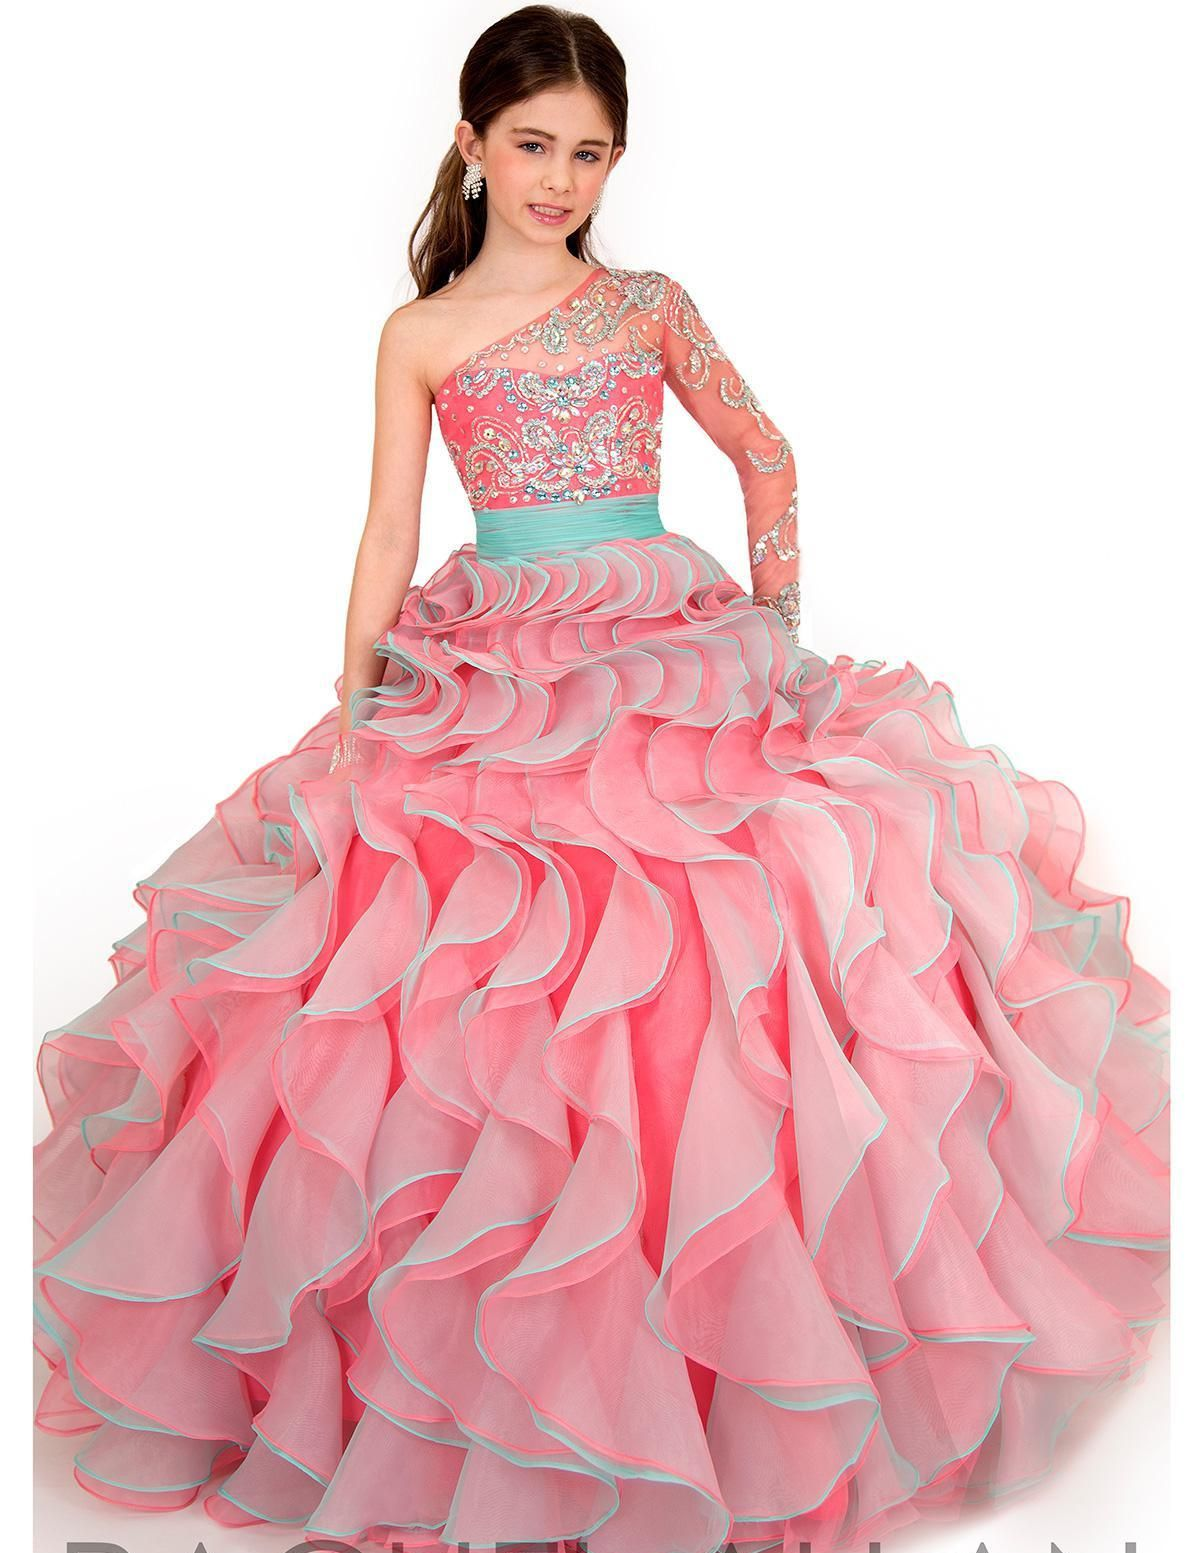 Free shipping, $106.99/Piece:buy wholesale 2014 Hot Sale Fashion Summer Sheer Tulle Crystal Girl's Pageant Dresses Organza Cascading Ruffles Sweep Train kids Party Prom Ball Gowns from DHgate.com,get worldwide delivery and buyer protection service.